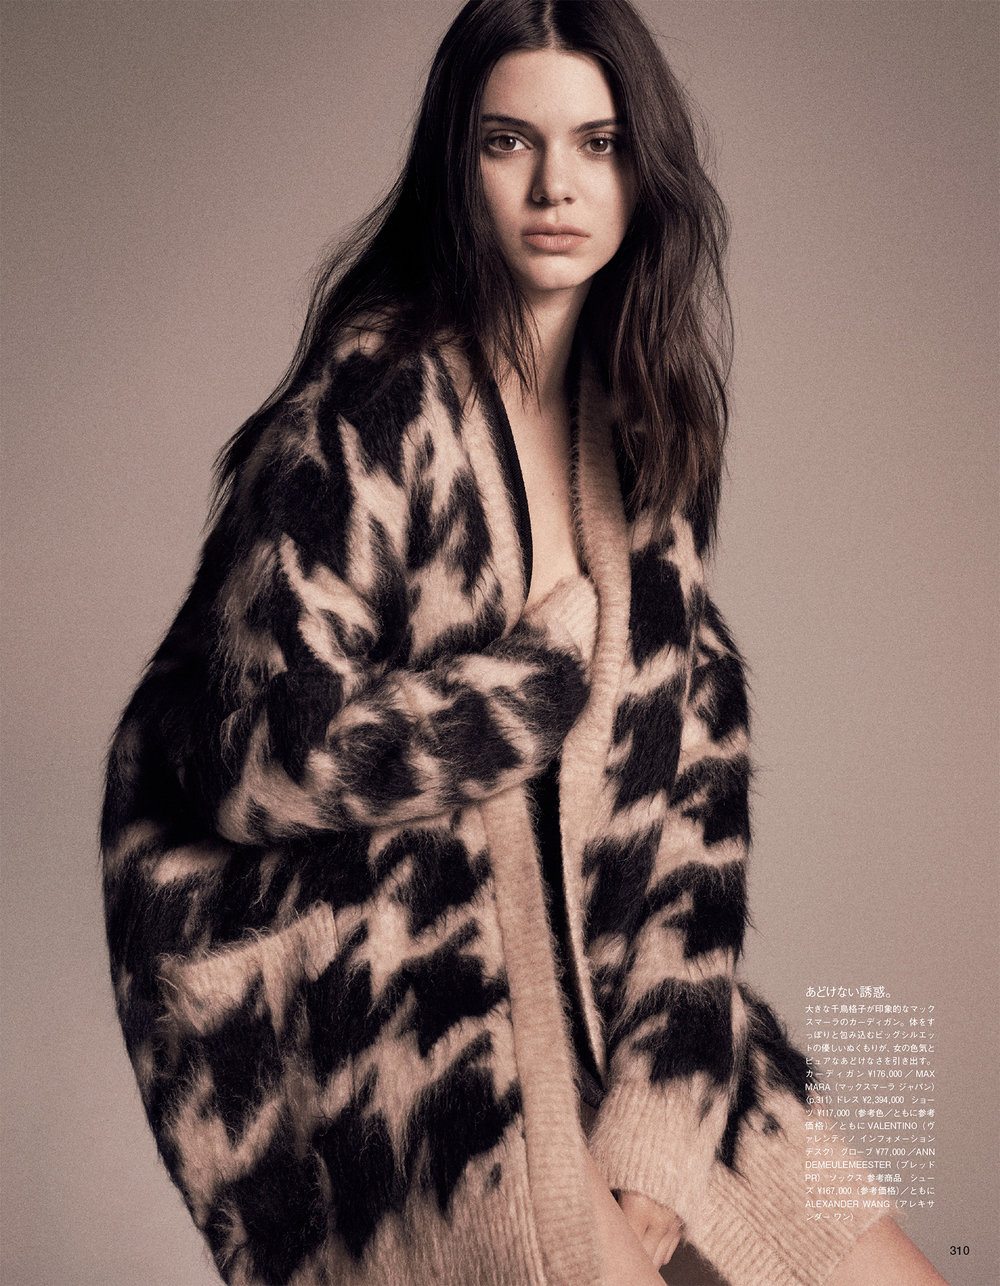 Giovanna-Battaglia-Vogue-Japan-November-2015-Cool-As-Kendall-Patrick-Demarchelier-Kendall-Jenner-6.jpg